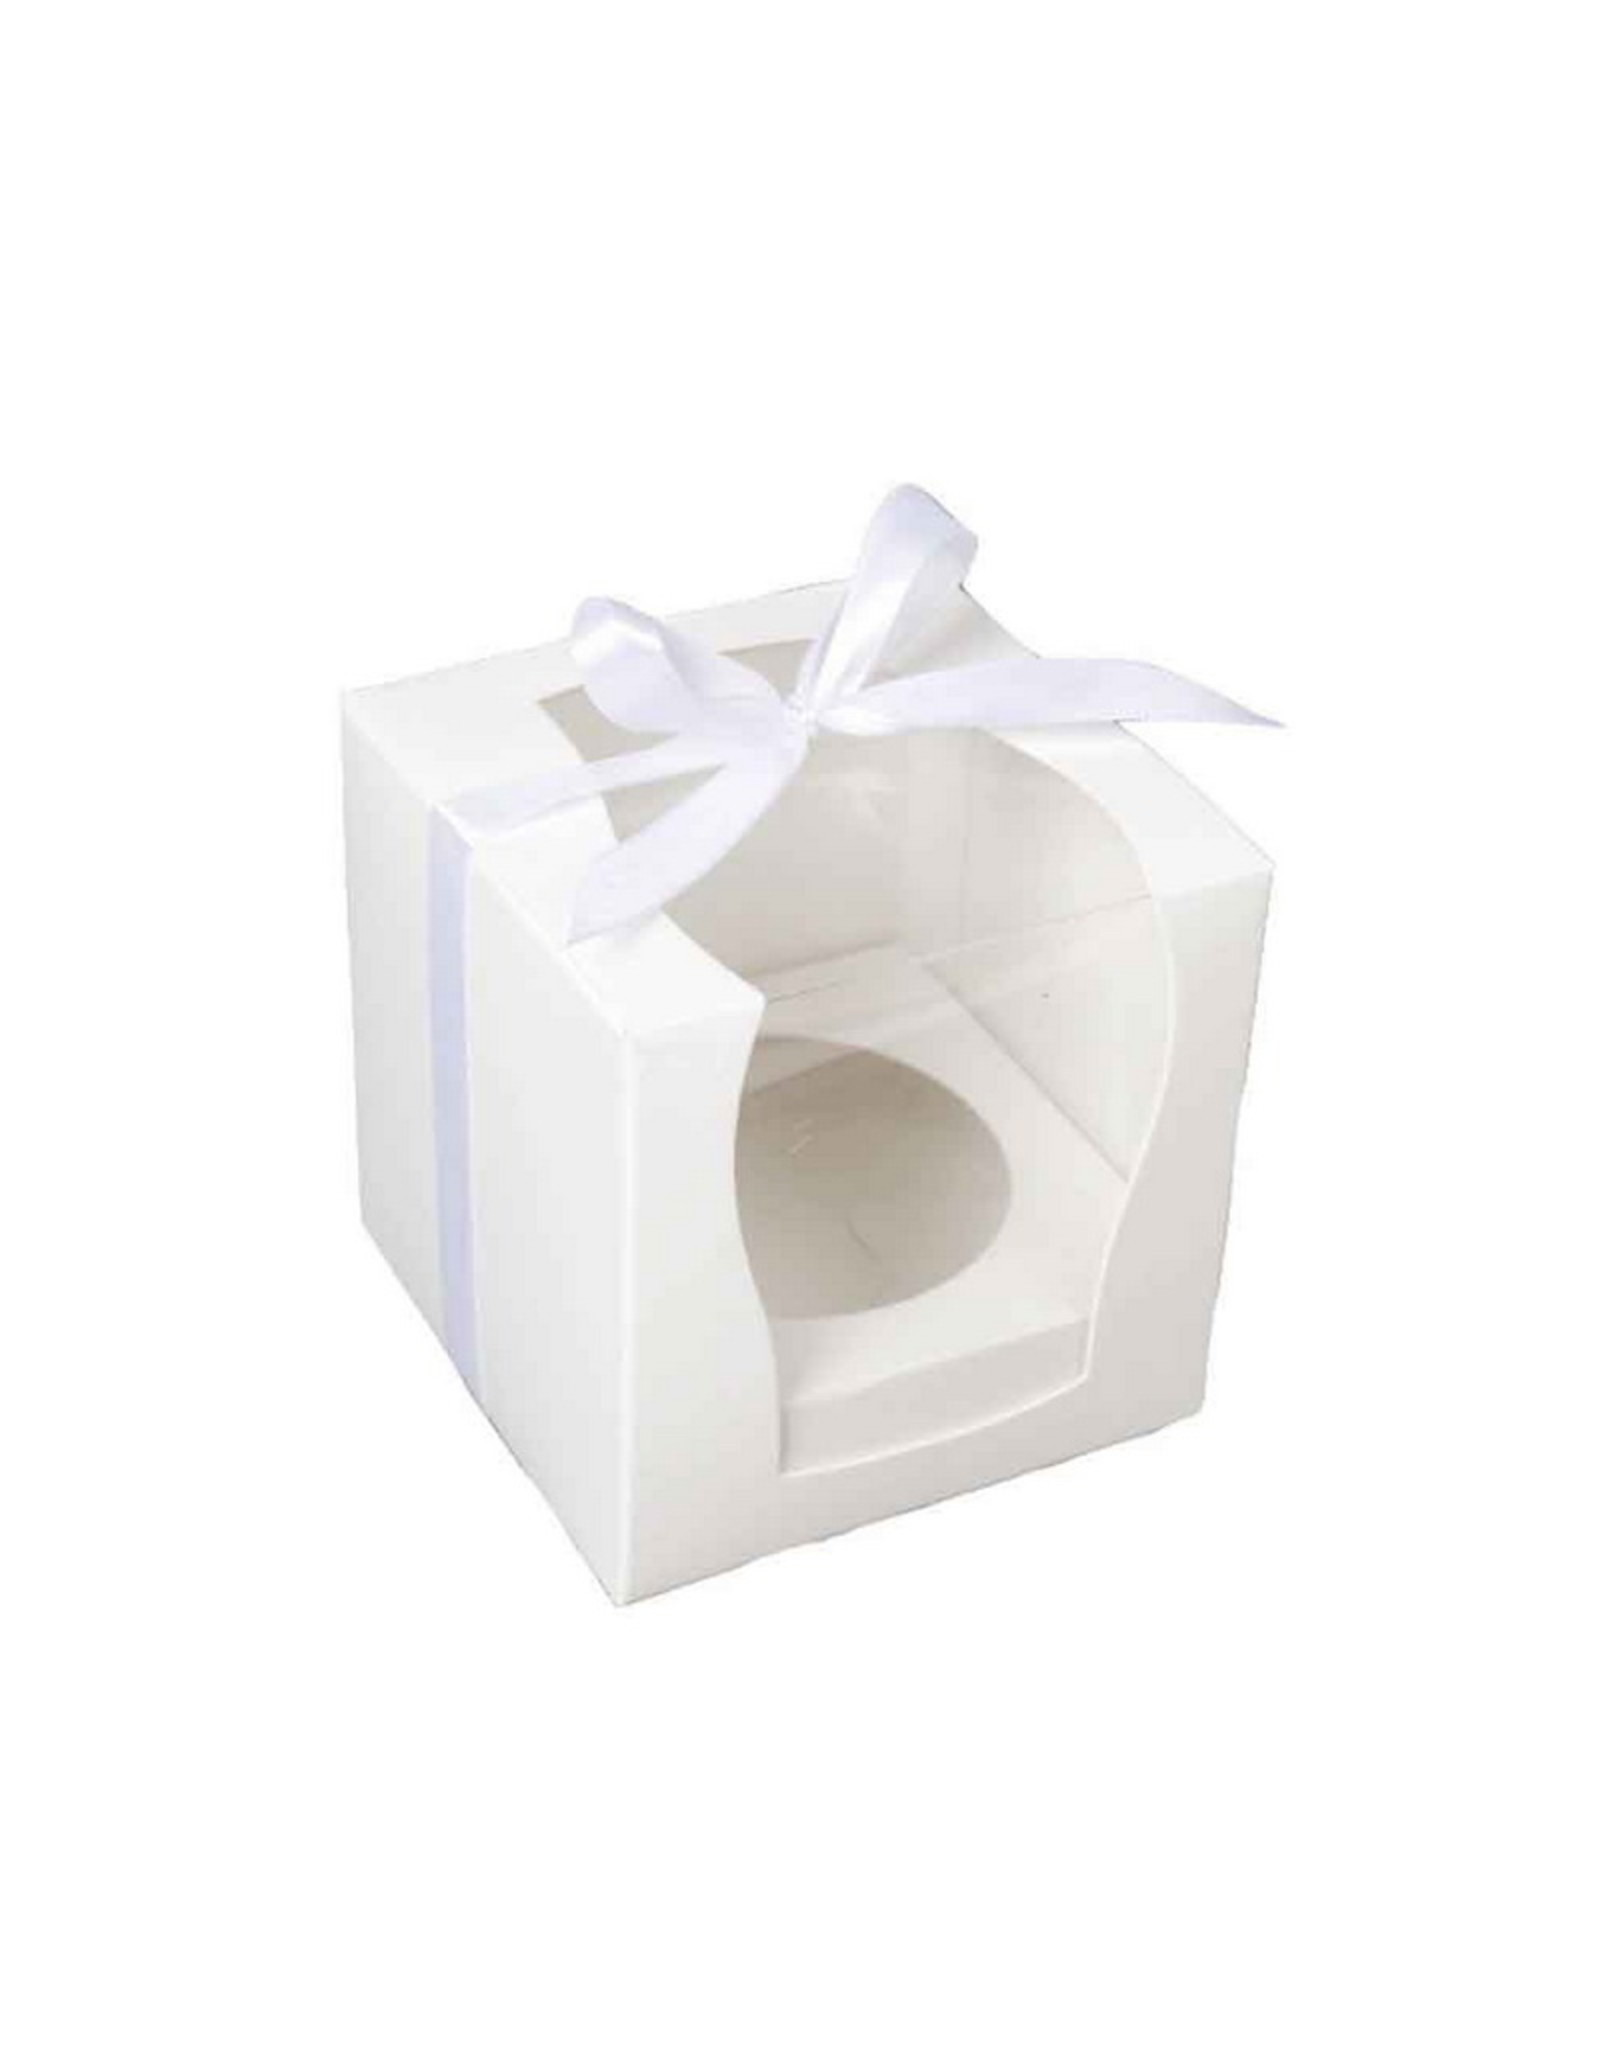 Box for 1 cupcake with extra large window (per 50 pieces)